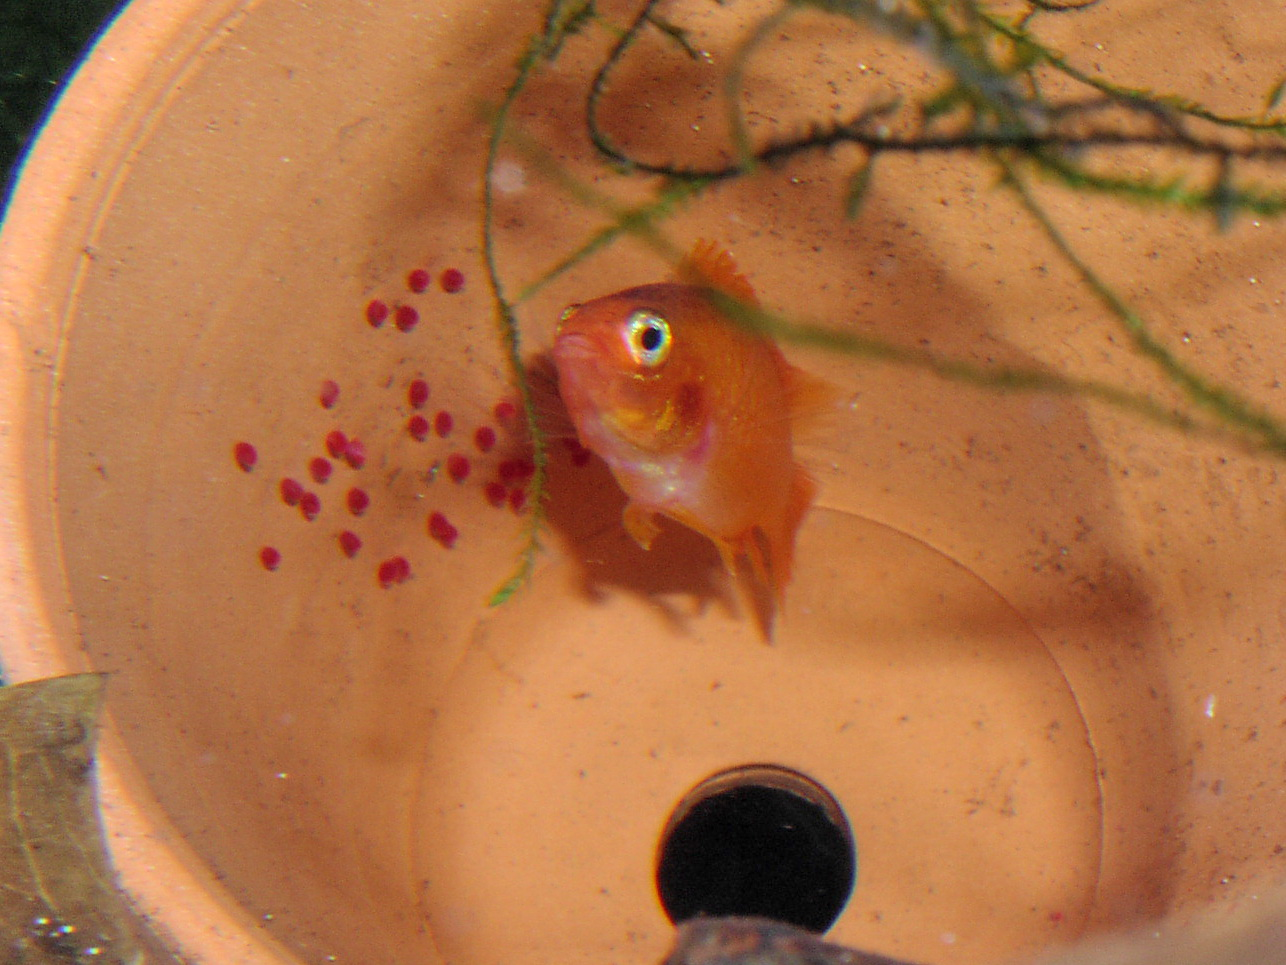 Female FireRed Apisto Agassizii with eggs (Apistogramma agassizii)